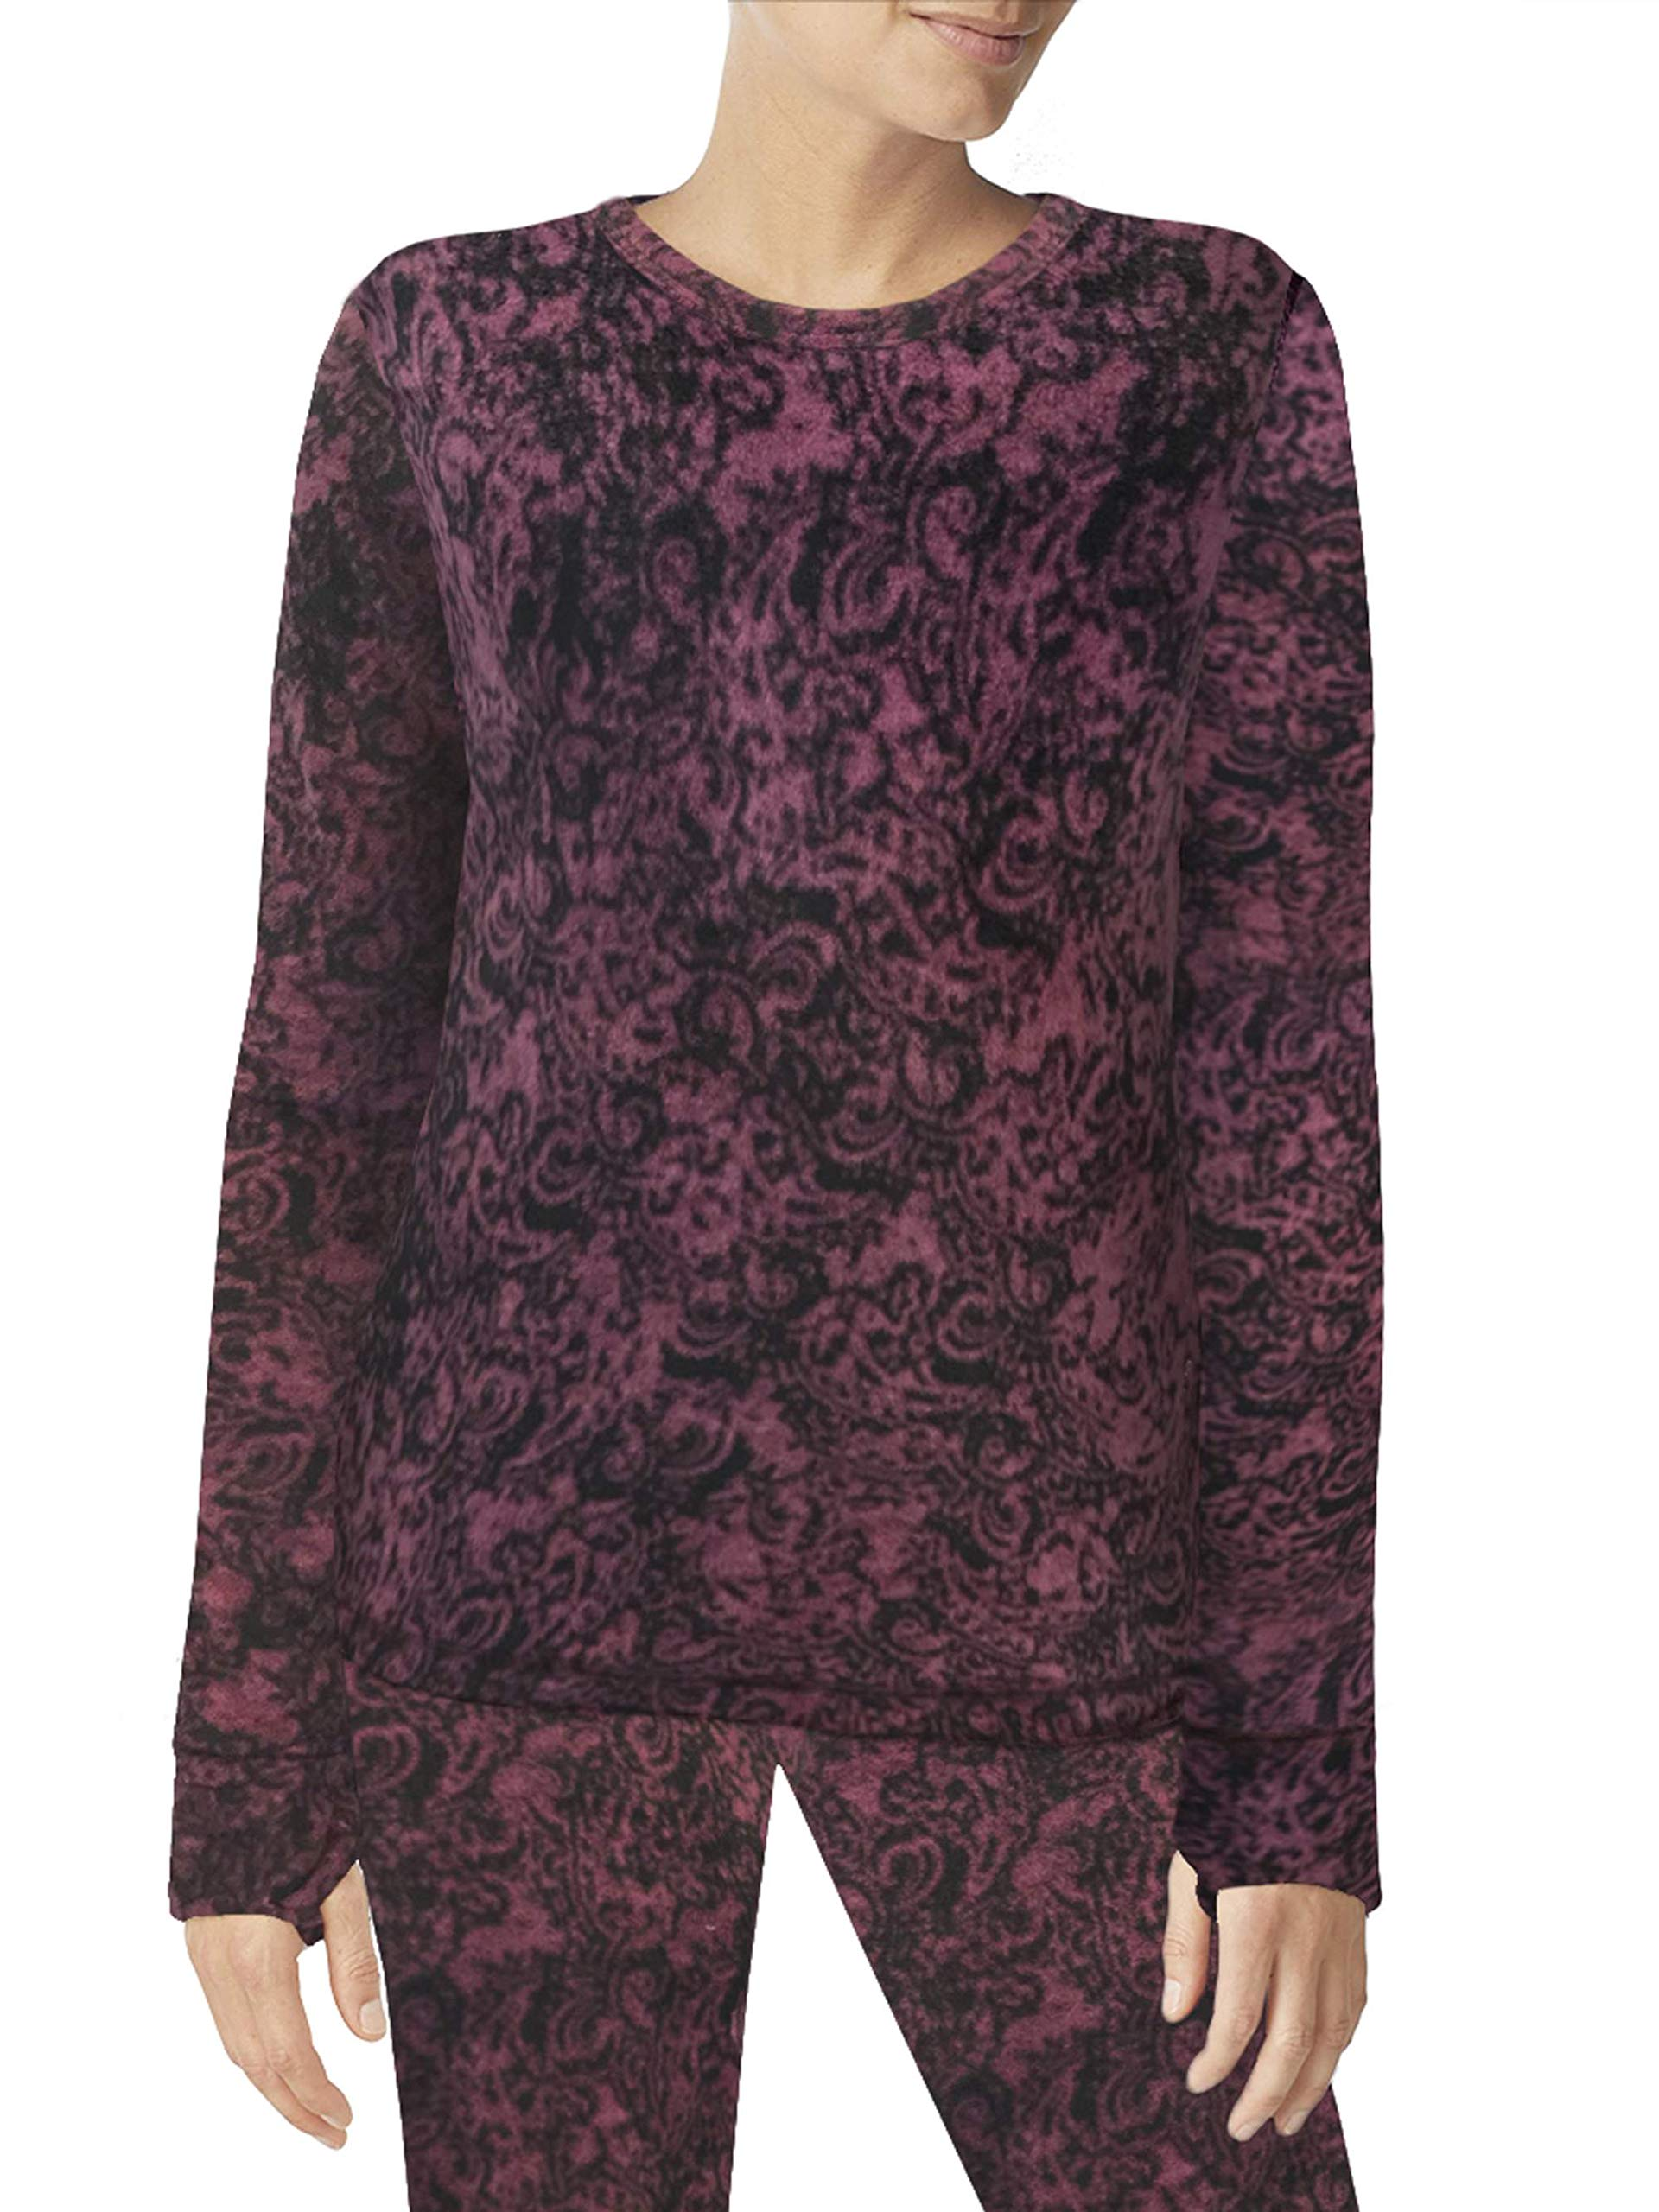 Cuddl Duds ClimateRight Women's Stretch Fleece Warm Underwear Long Sleeve Top (L - Abstract Scroll) by Cuddl Duds